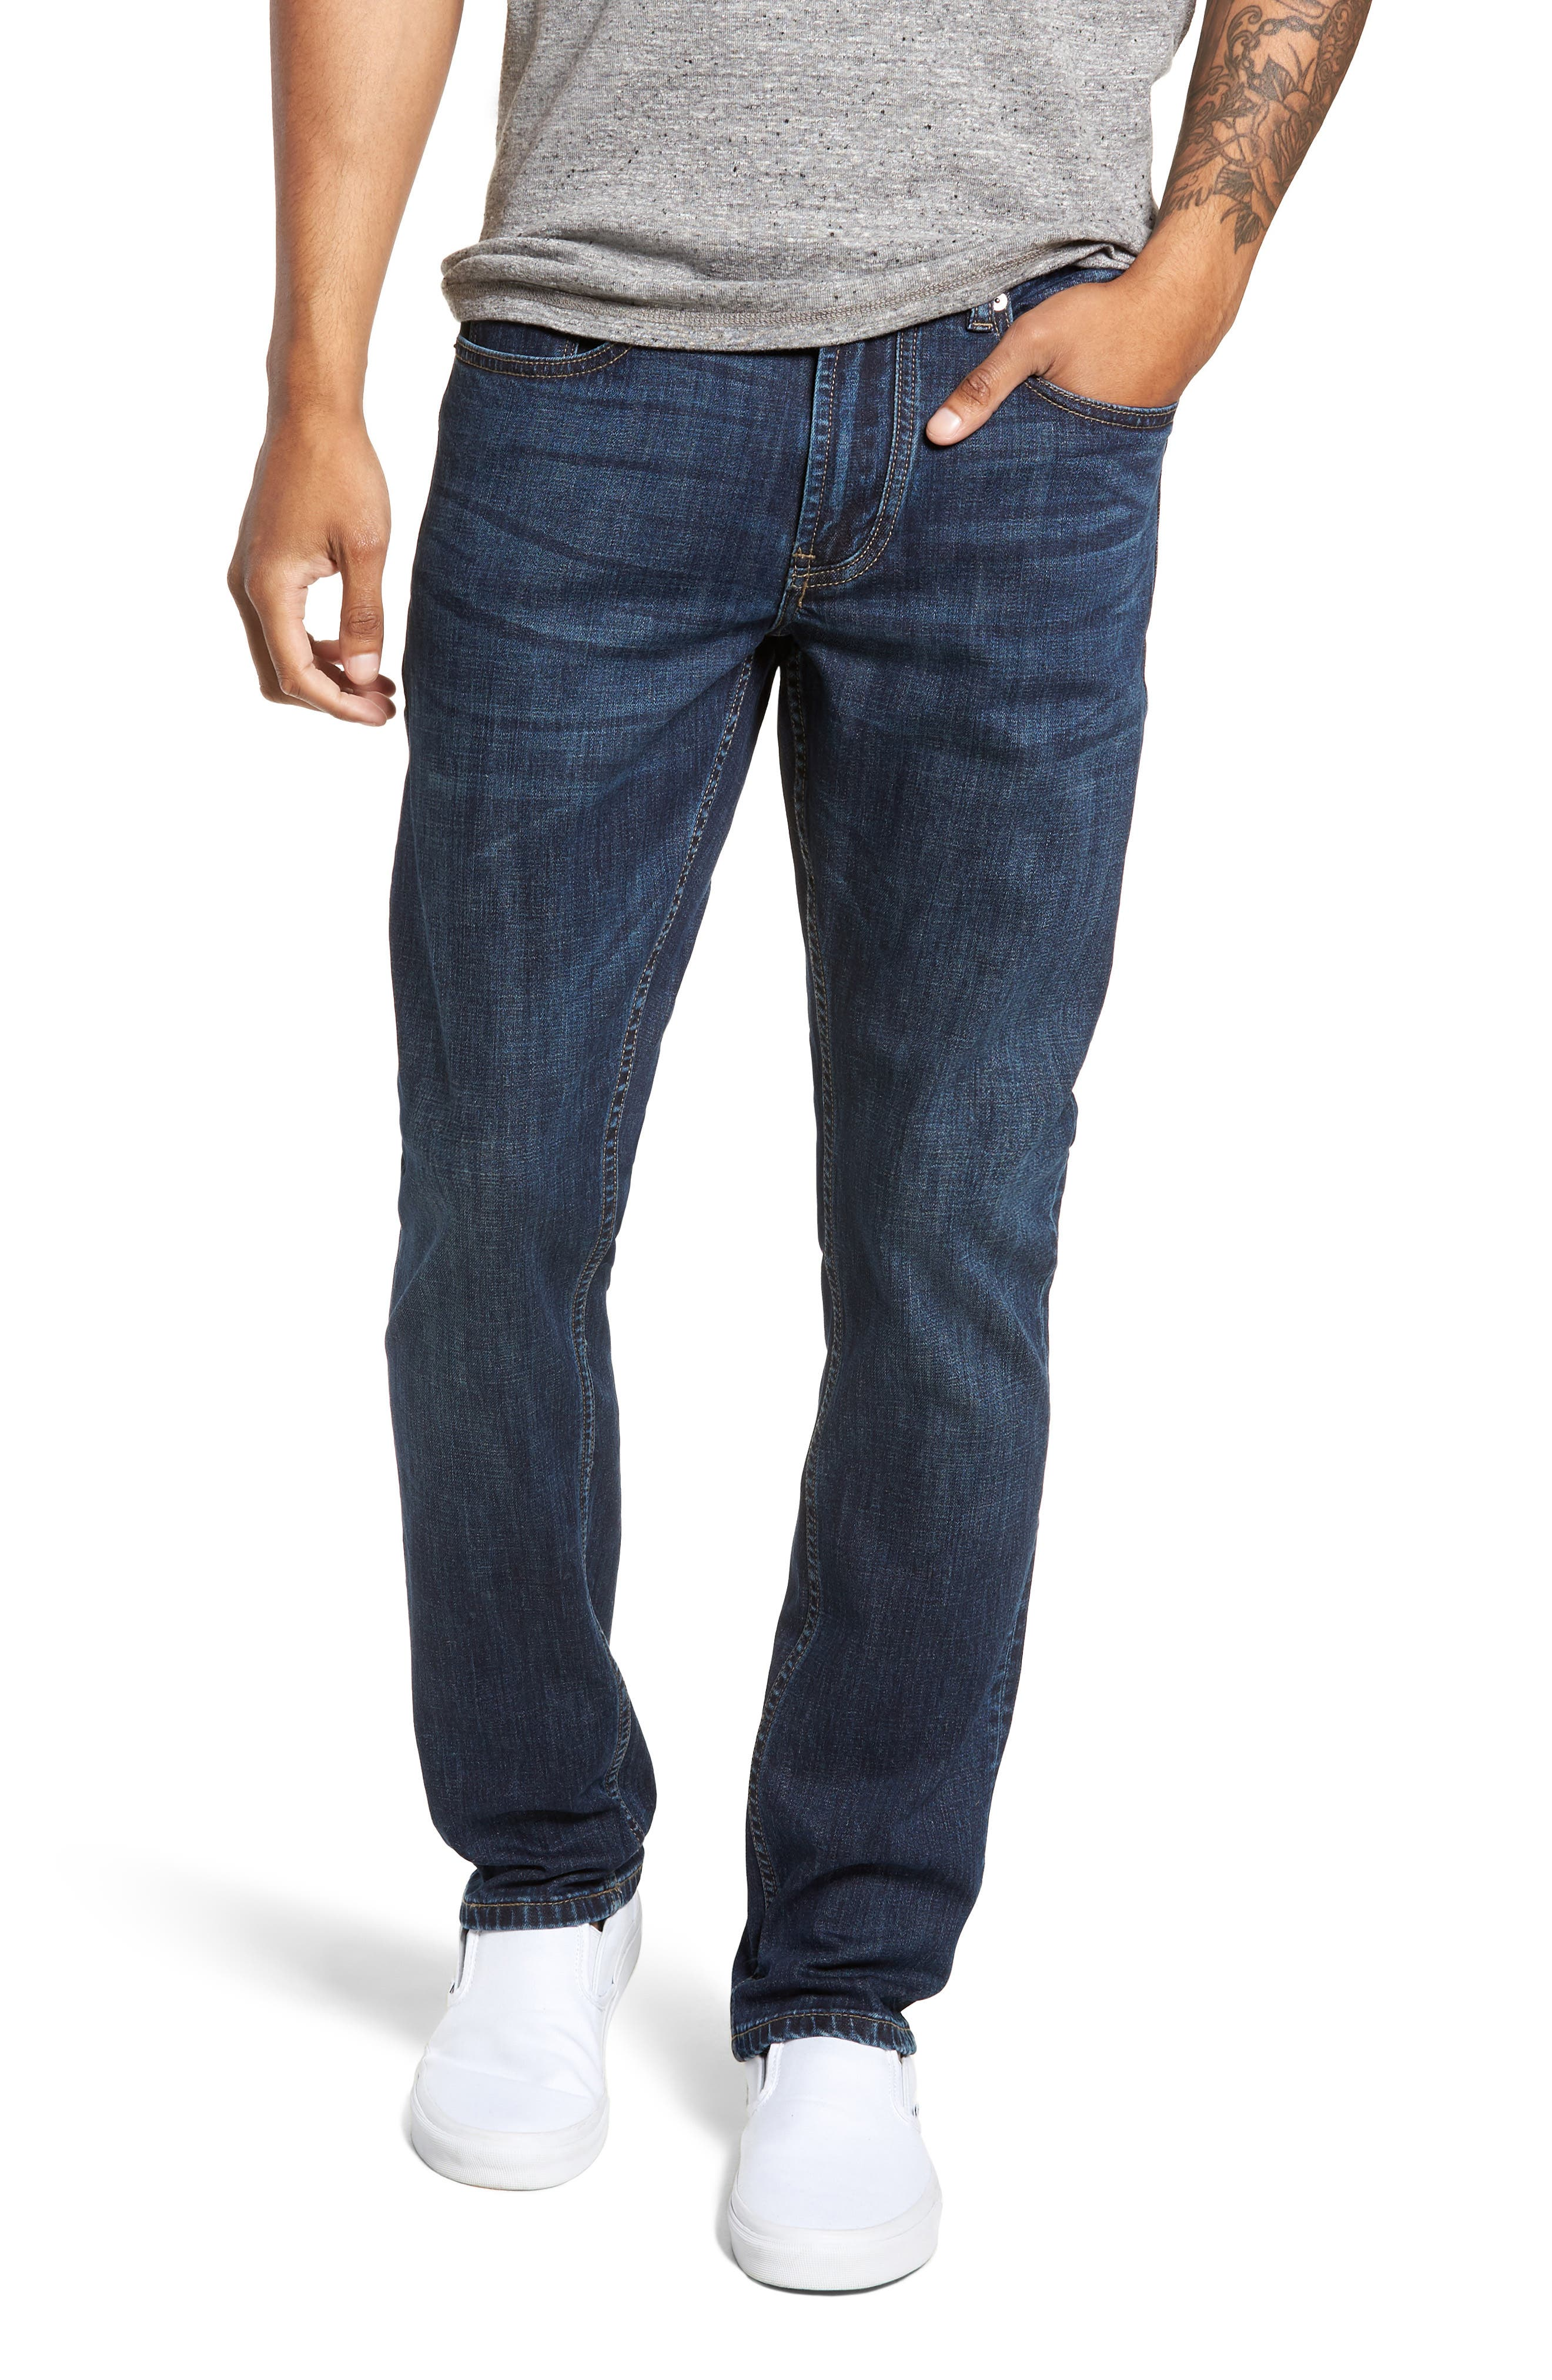 Wooster Slim Fit Jeans,                             Main thumbnail 1, color,                             THROTTLE THRUST